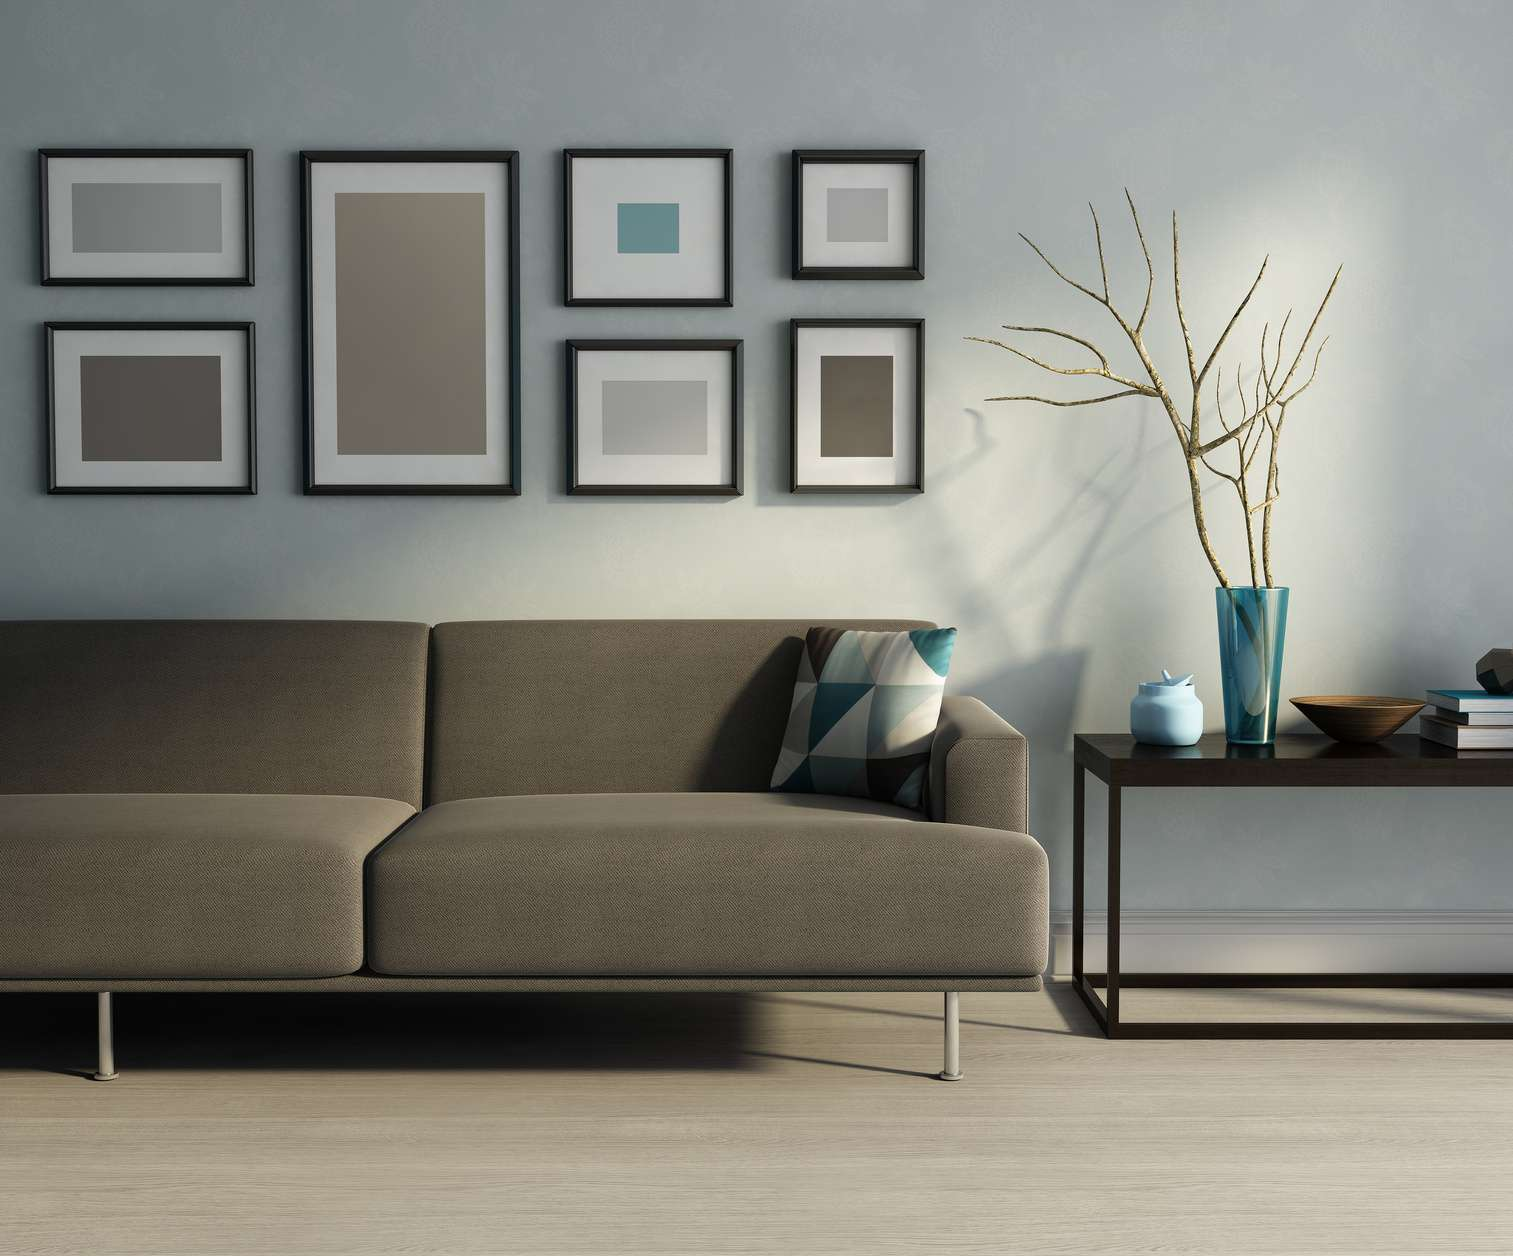 Modern interior, biege sofa, frames and a table